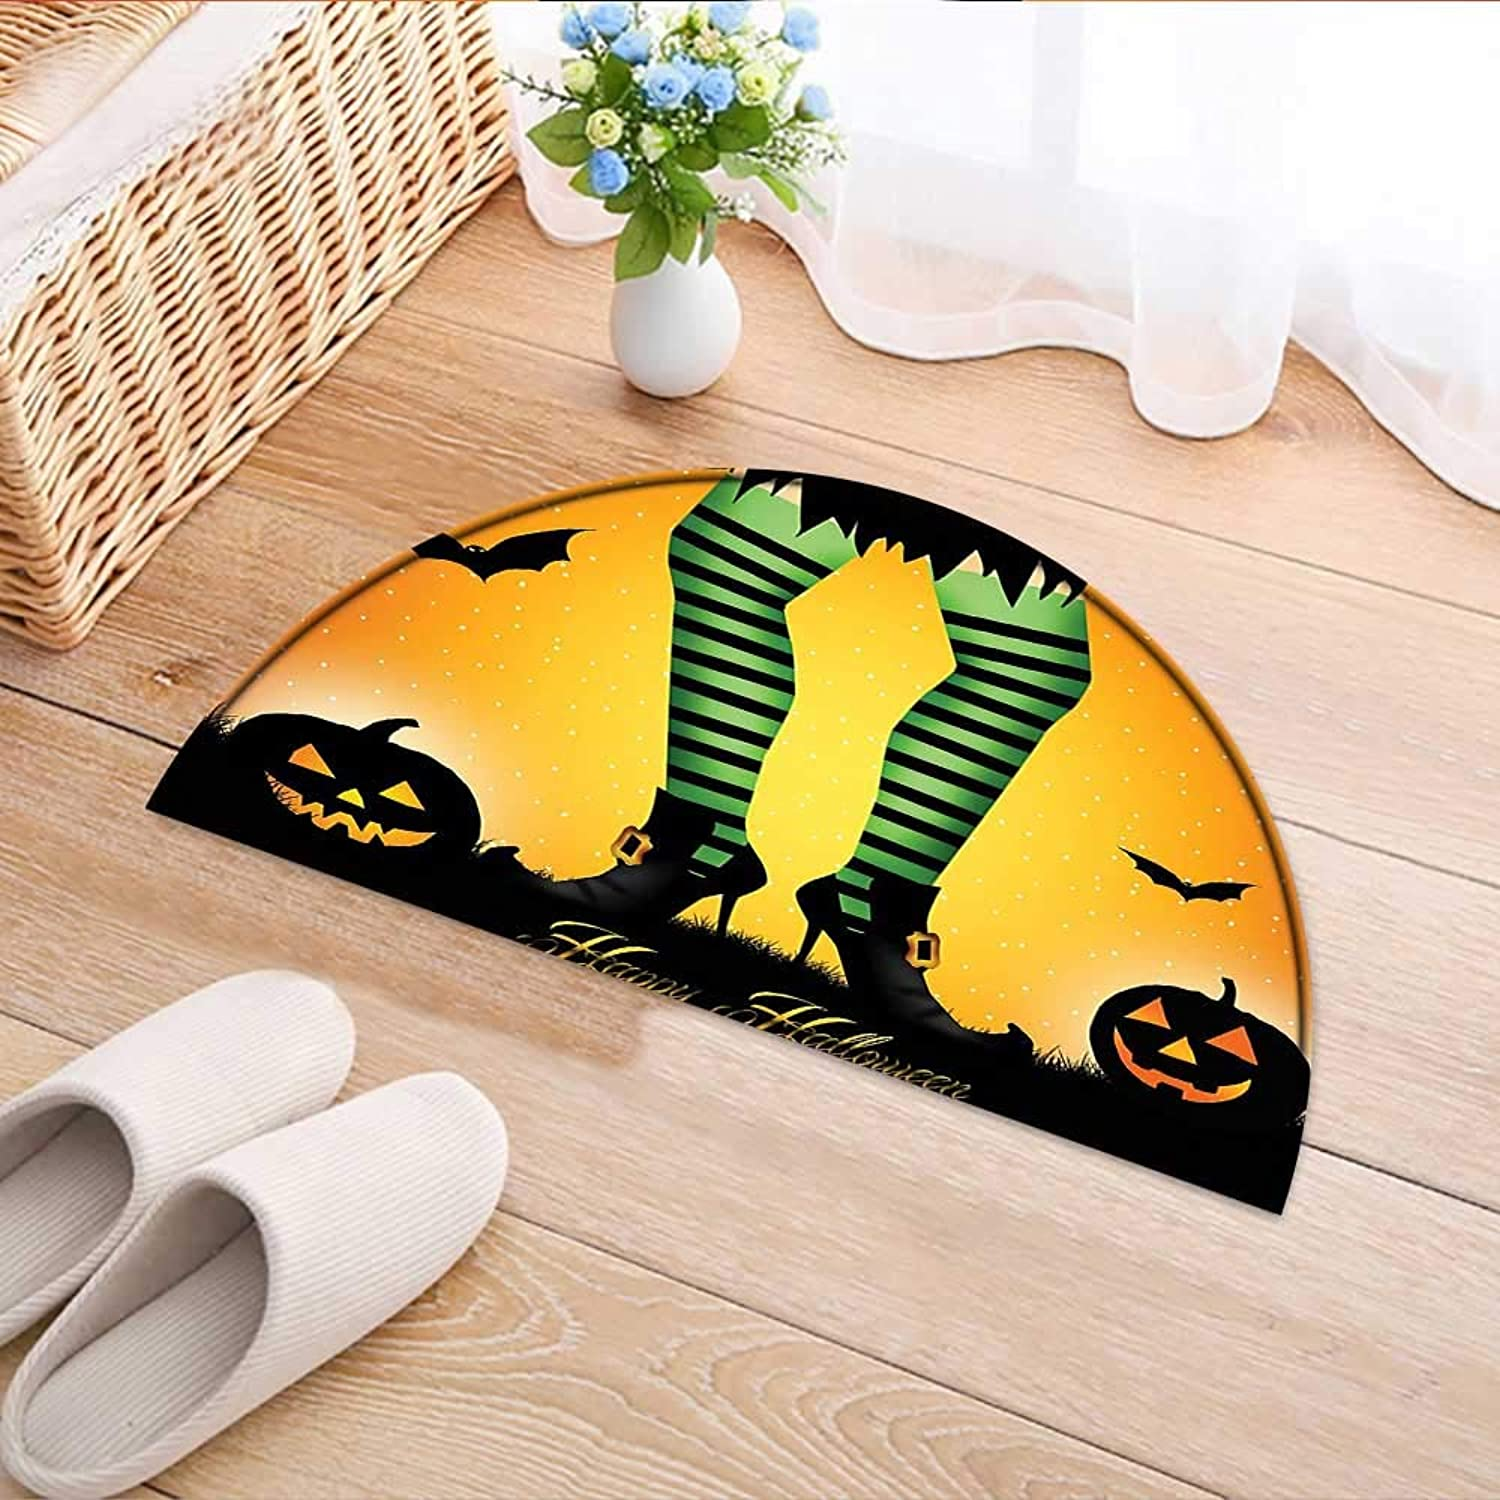 Semicircle Area Rug Carpet Cartoon Witch Legs with Striped Leggings Western Culture Concept Bats and Pumpkins Multi Door mat Indoors Bathroom Mats Non Slip W37 x H26 INCH